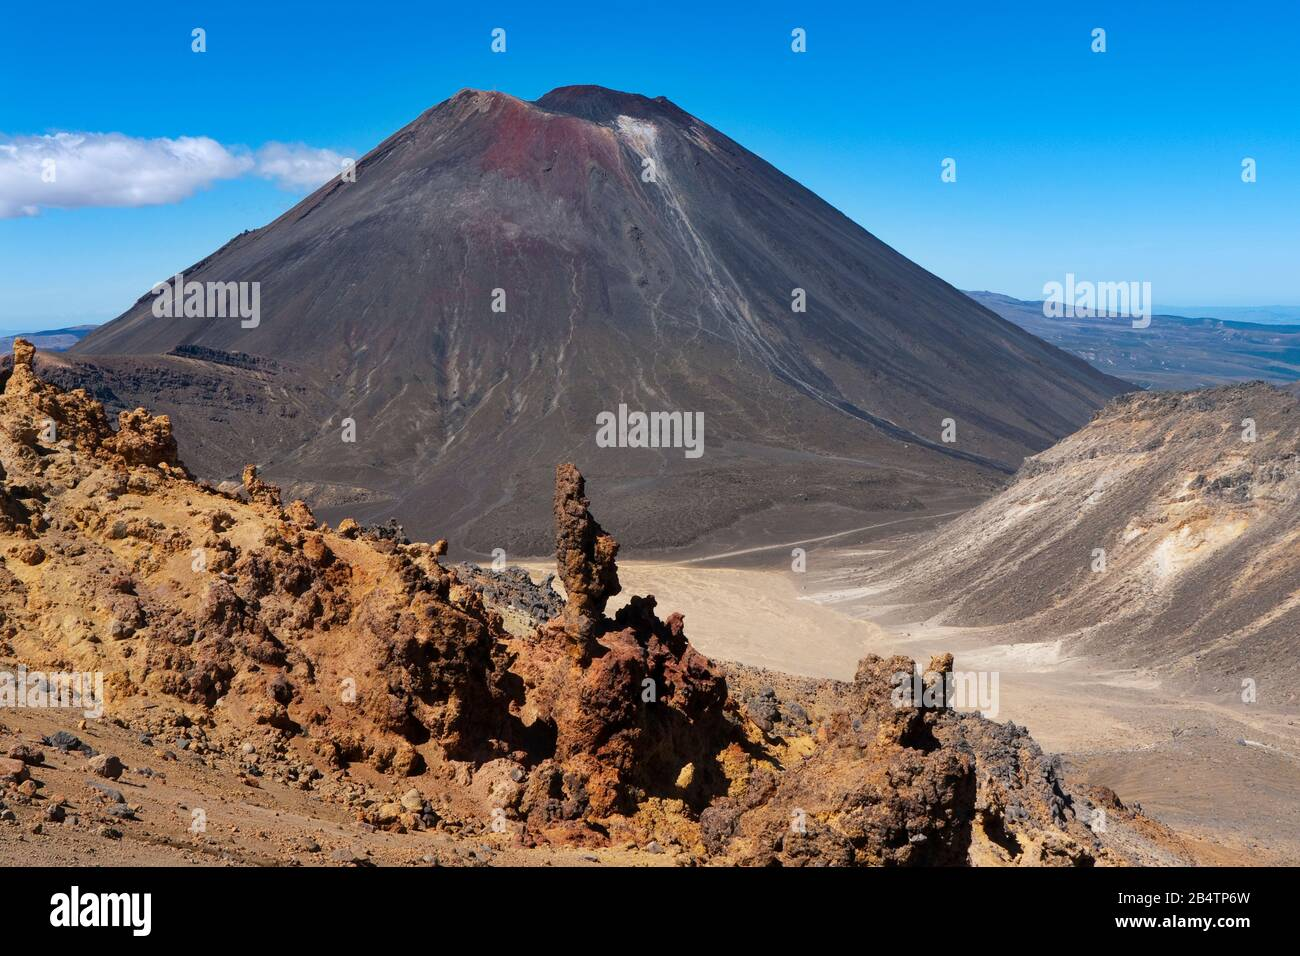 The cone of Mount Ngauruhoe, Tongariro Alpine Crossing, New Zealand Stock Photo